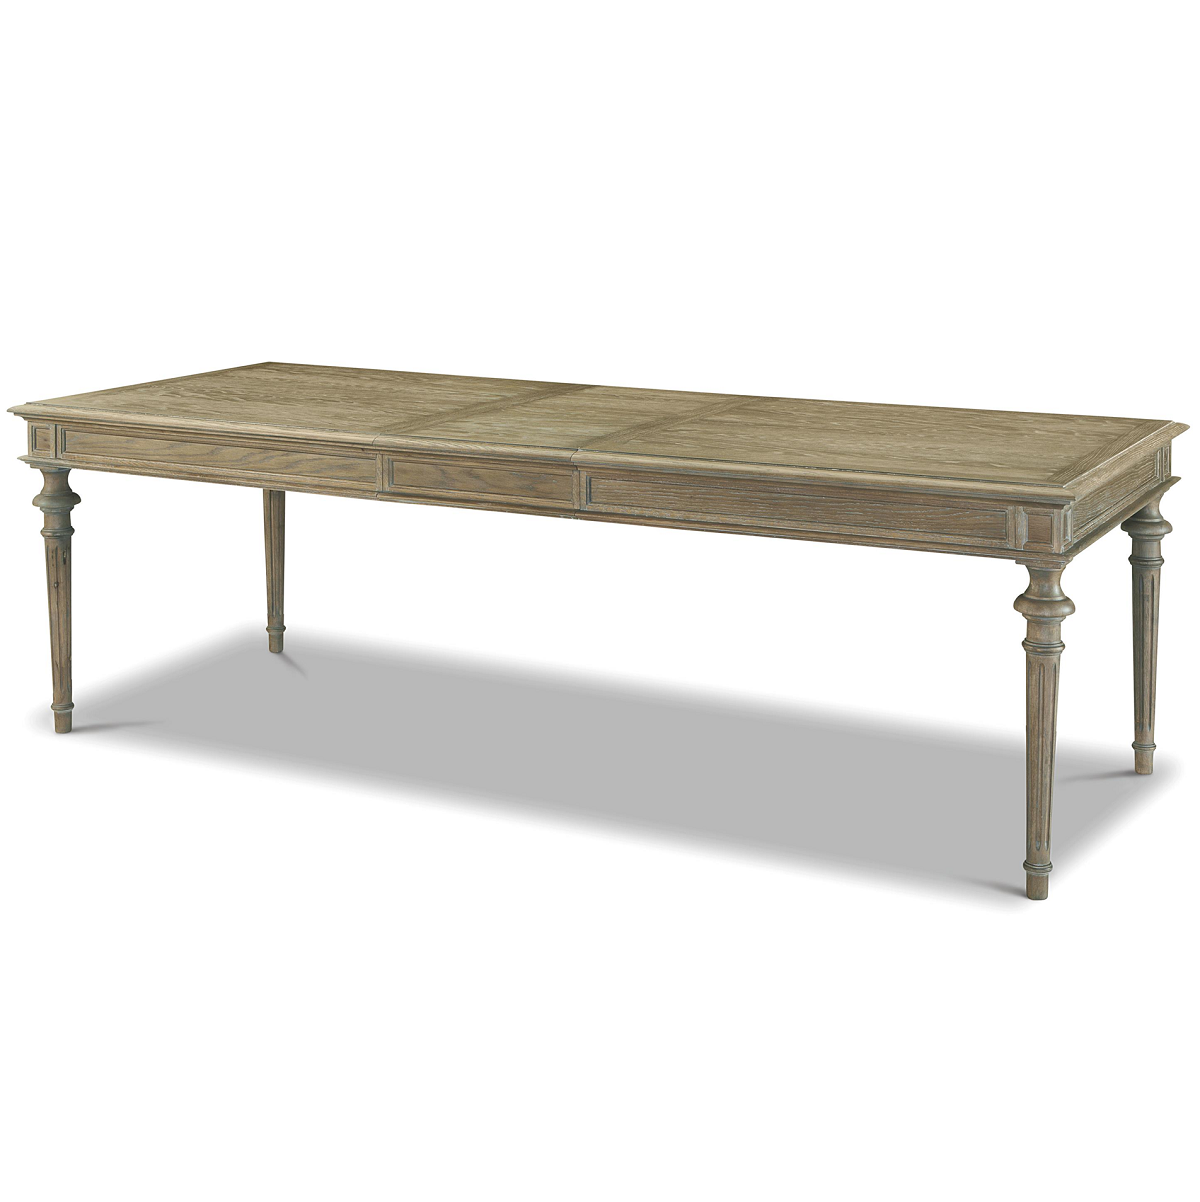 Extendable French oak dining table from Tribeca with turned leg OXHCHPW